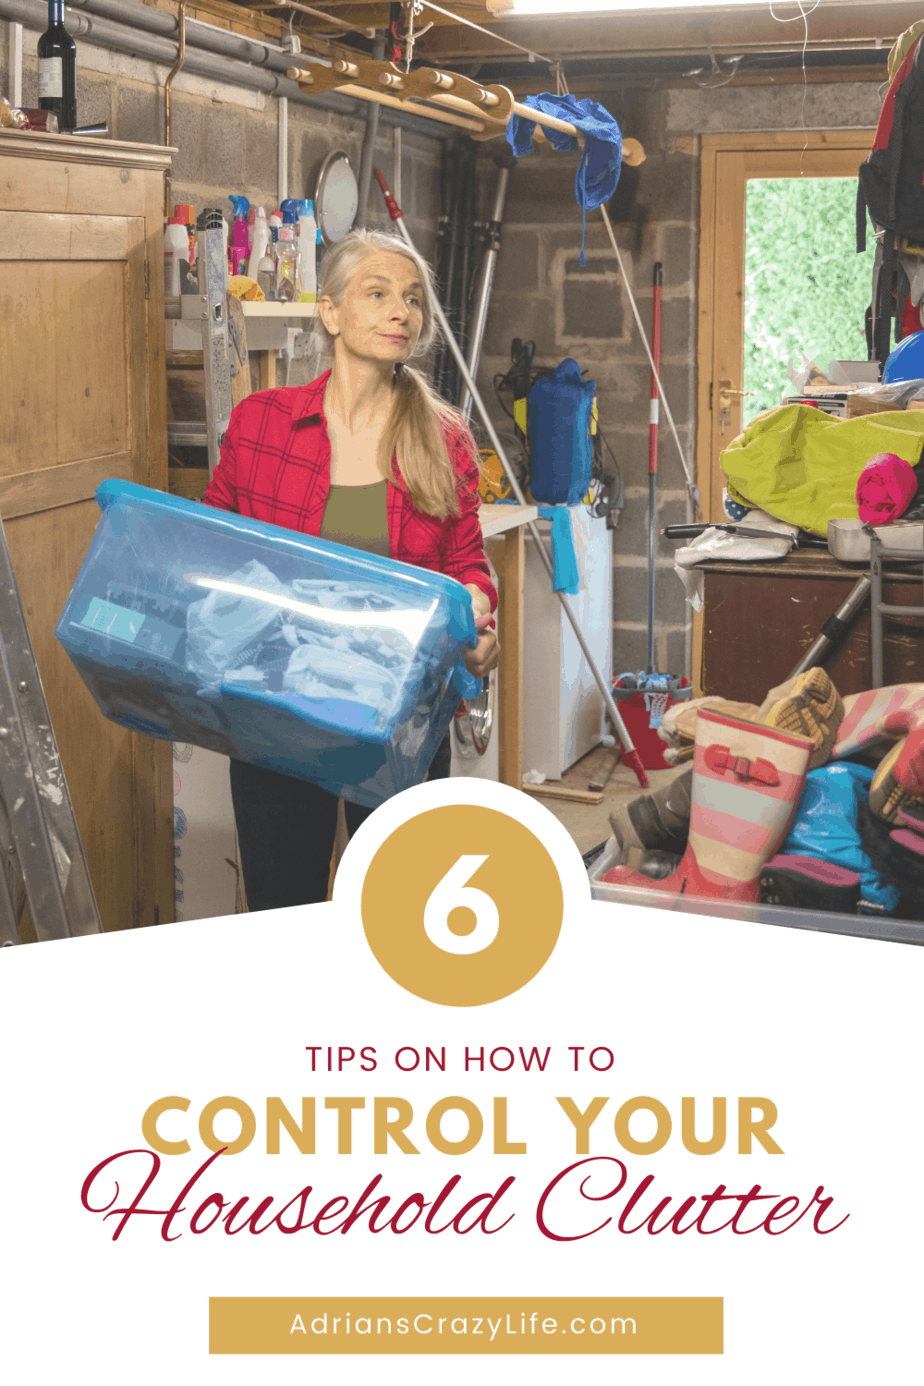 6 Tips to Control Household Clutter